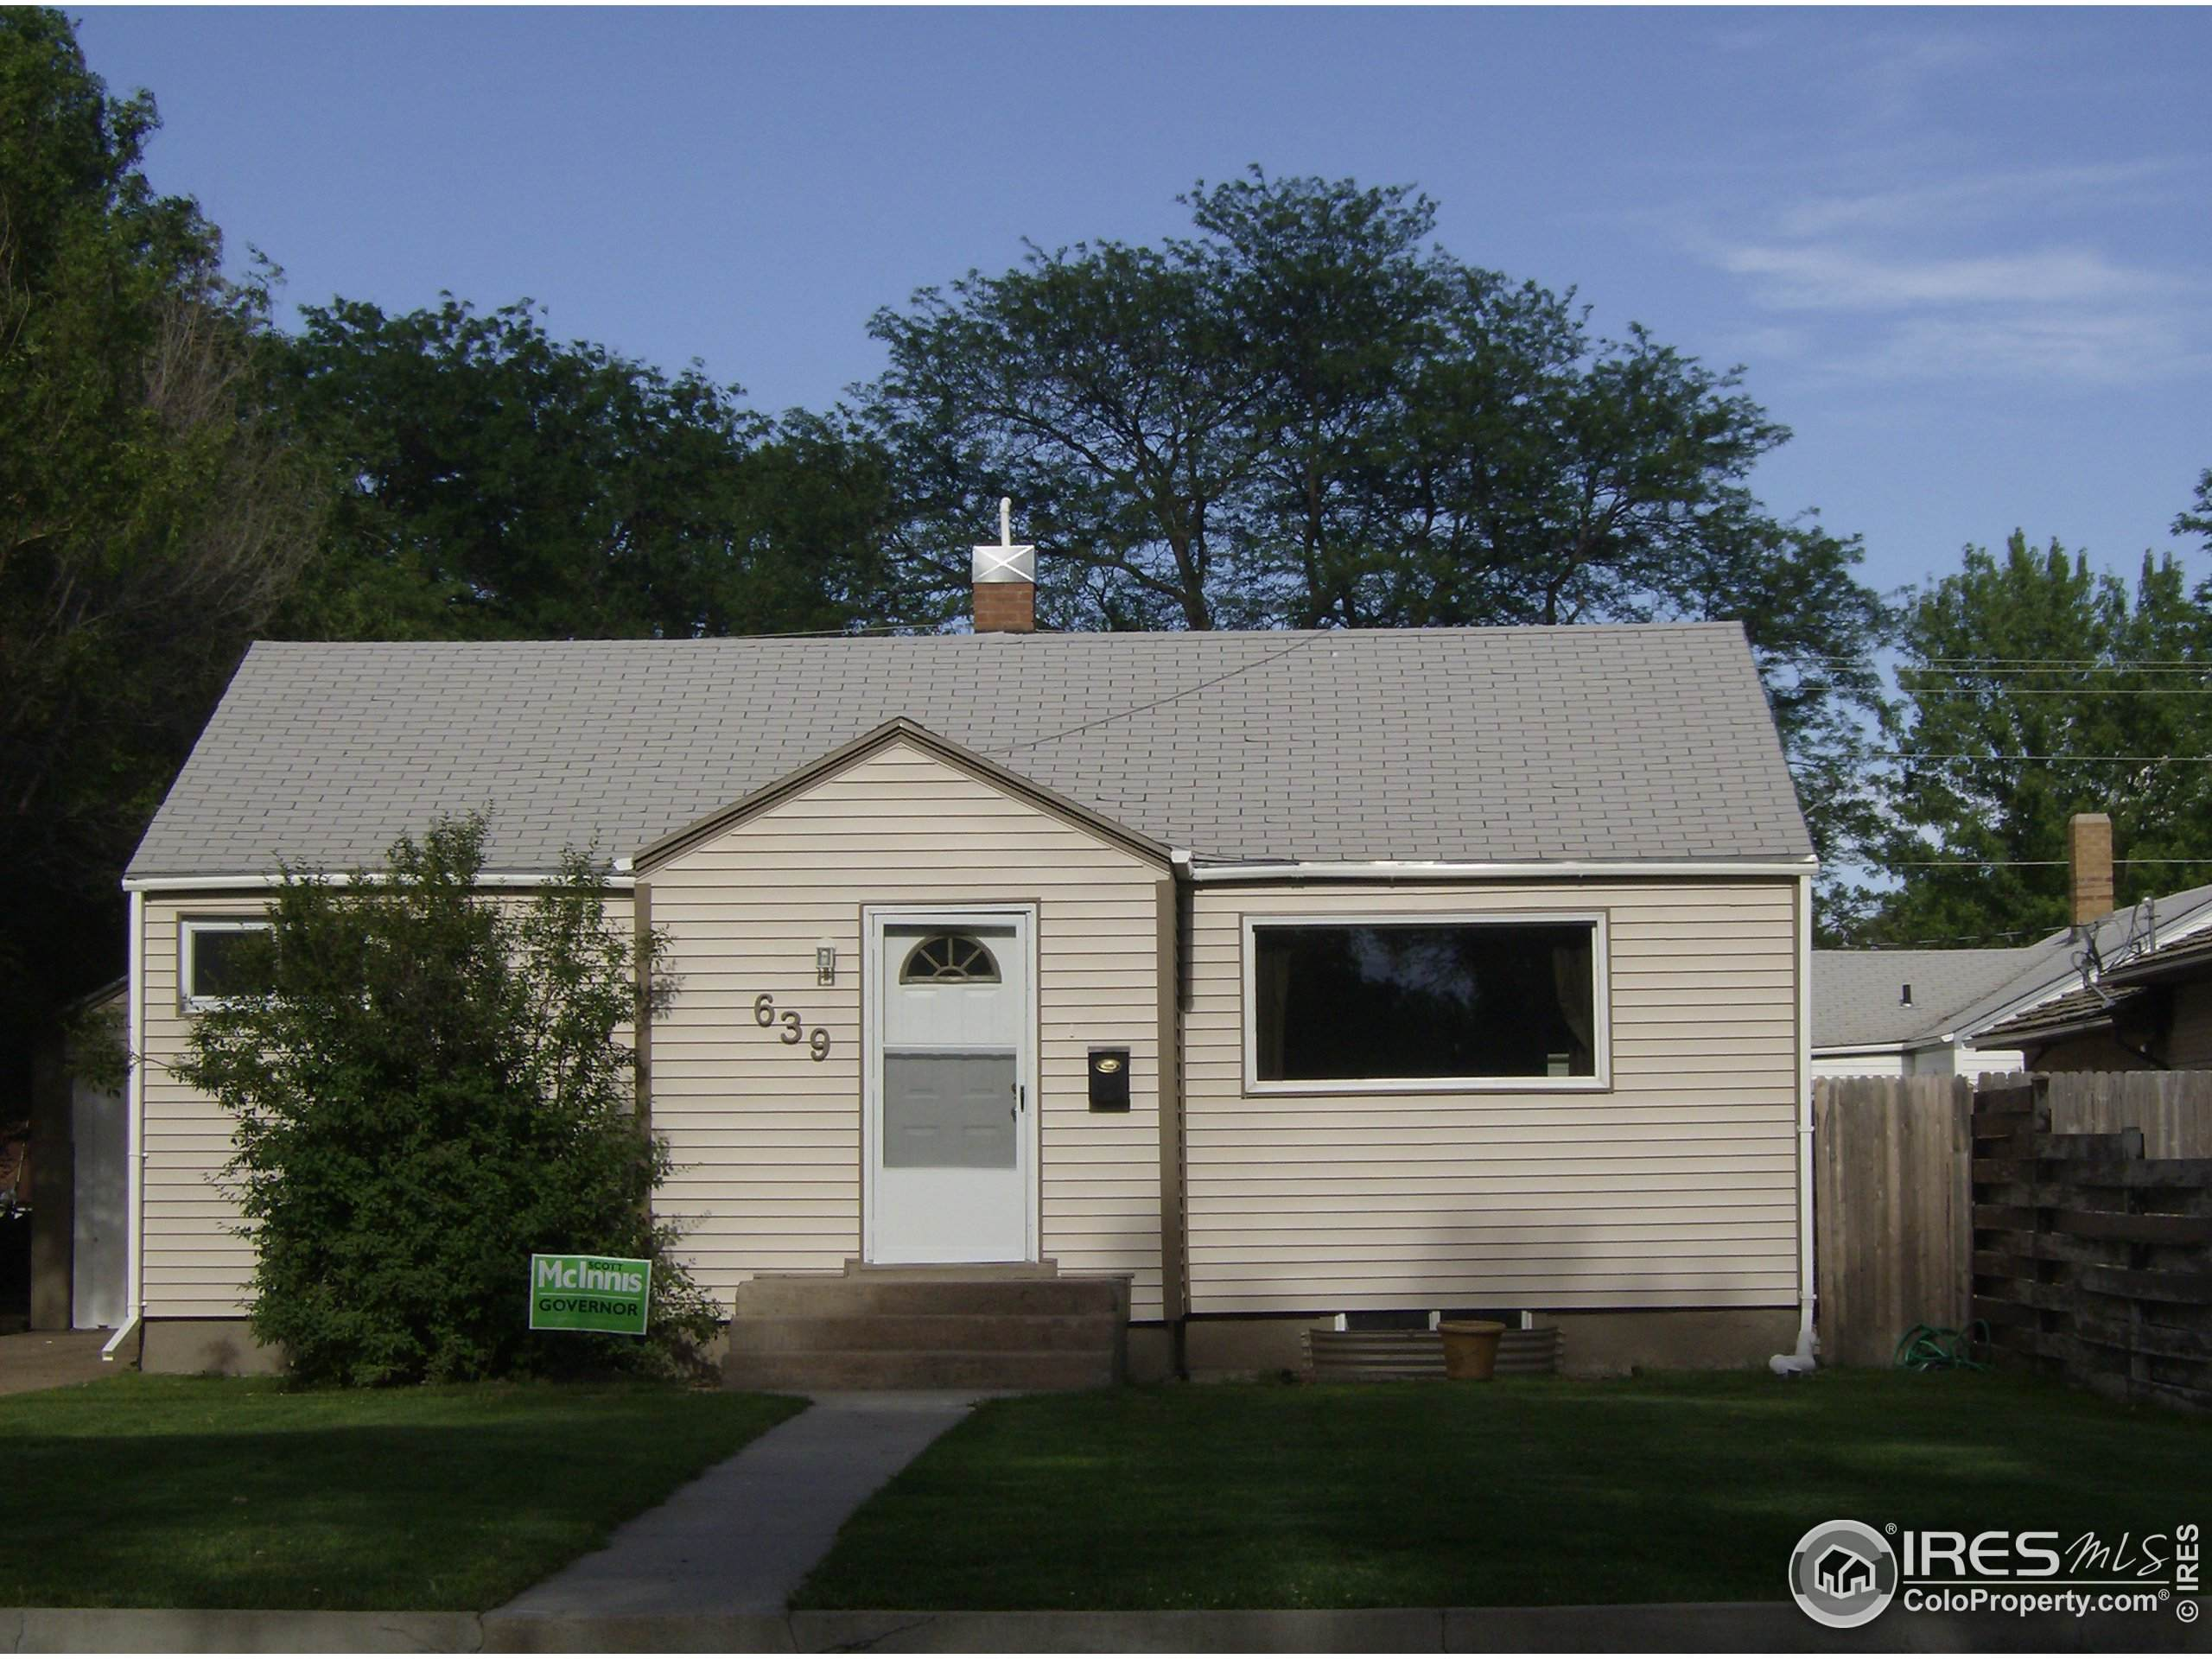 268 Hillspire Dr, Windsor, CO 80550 (MLS #933928) :: 8z Real Estate